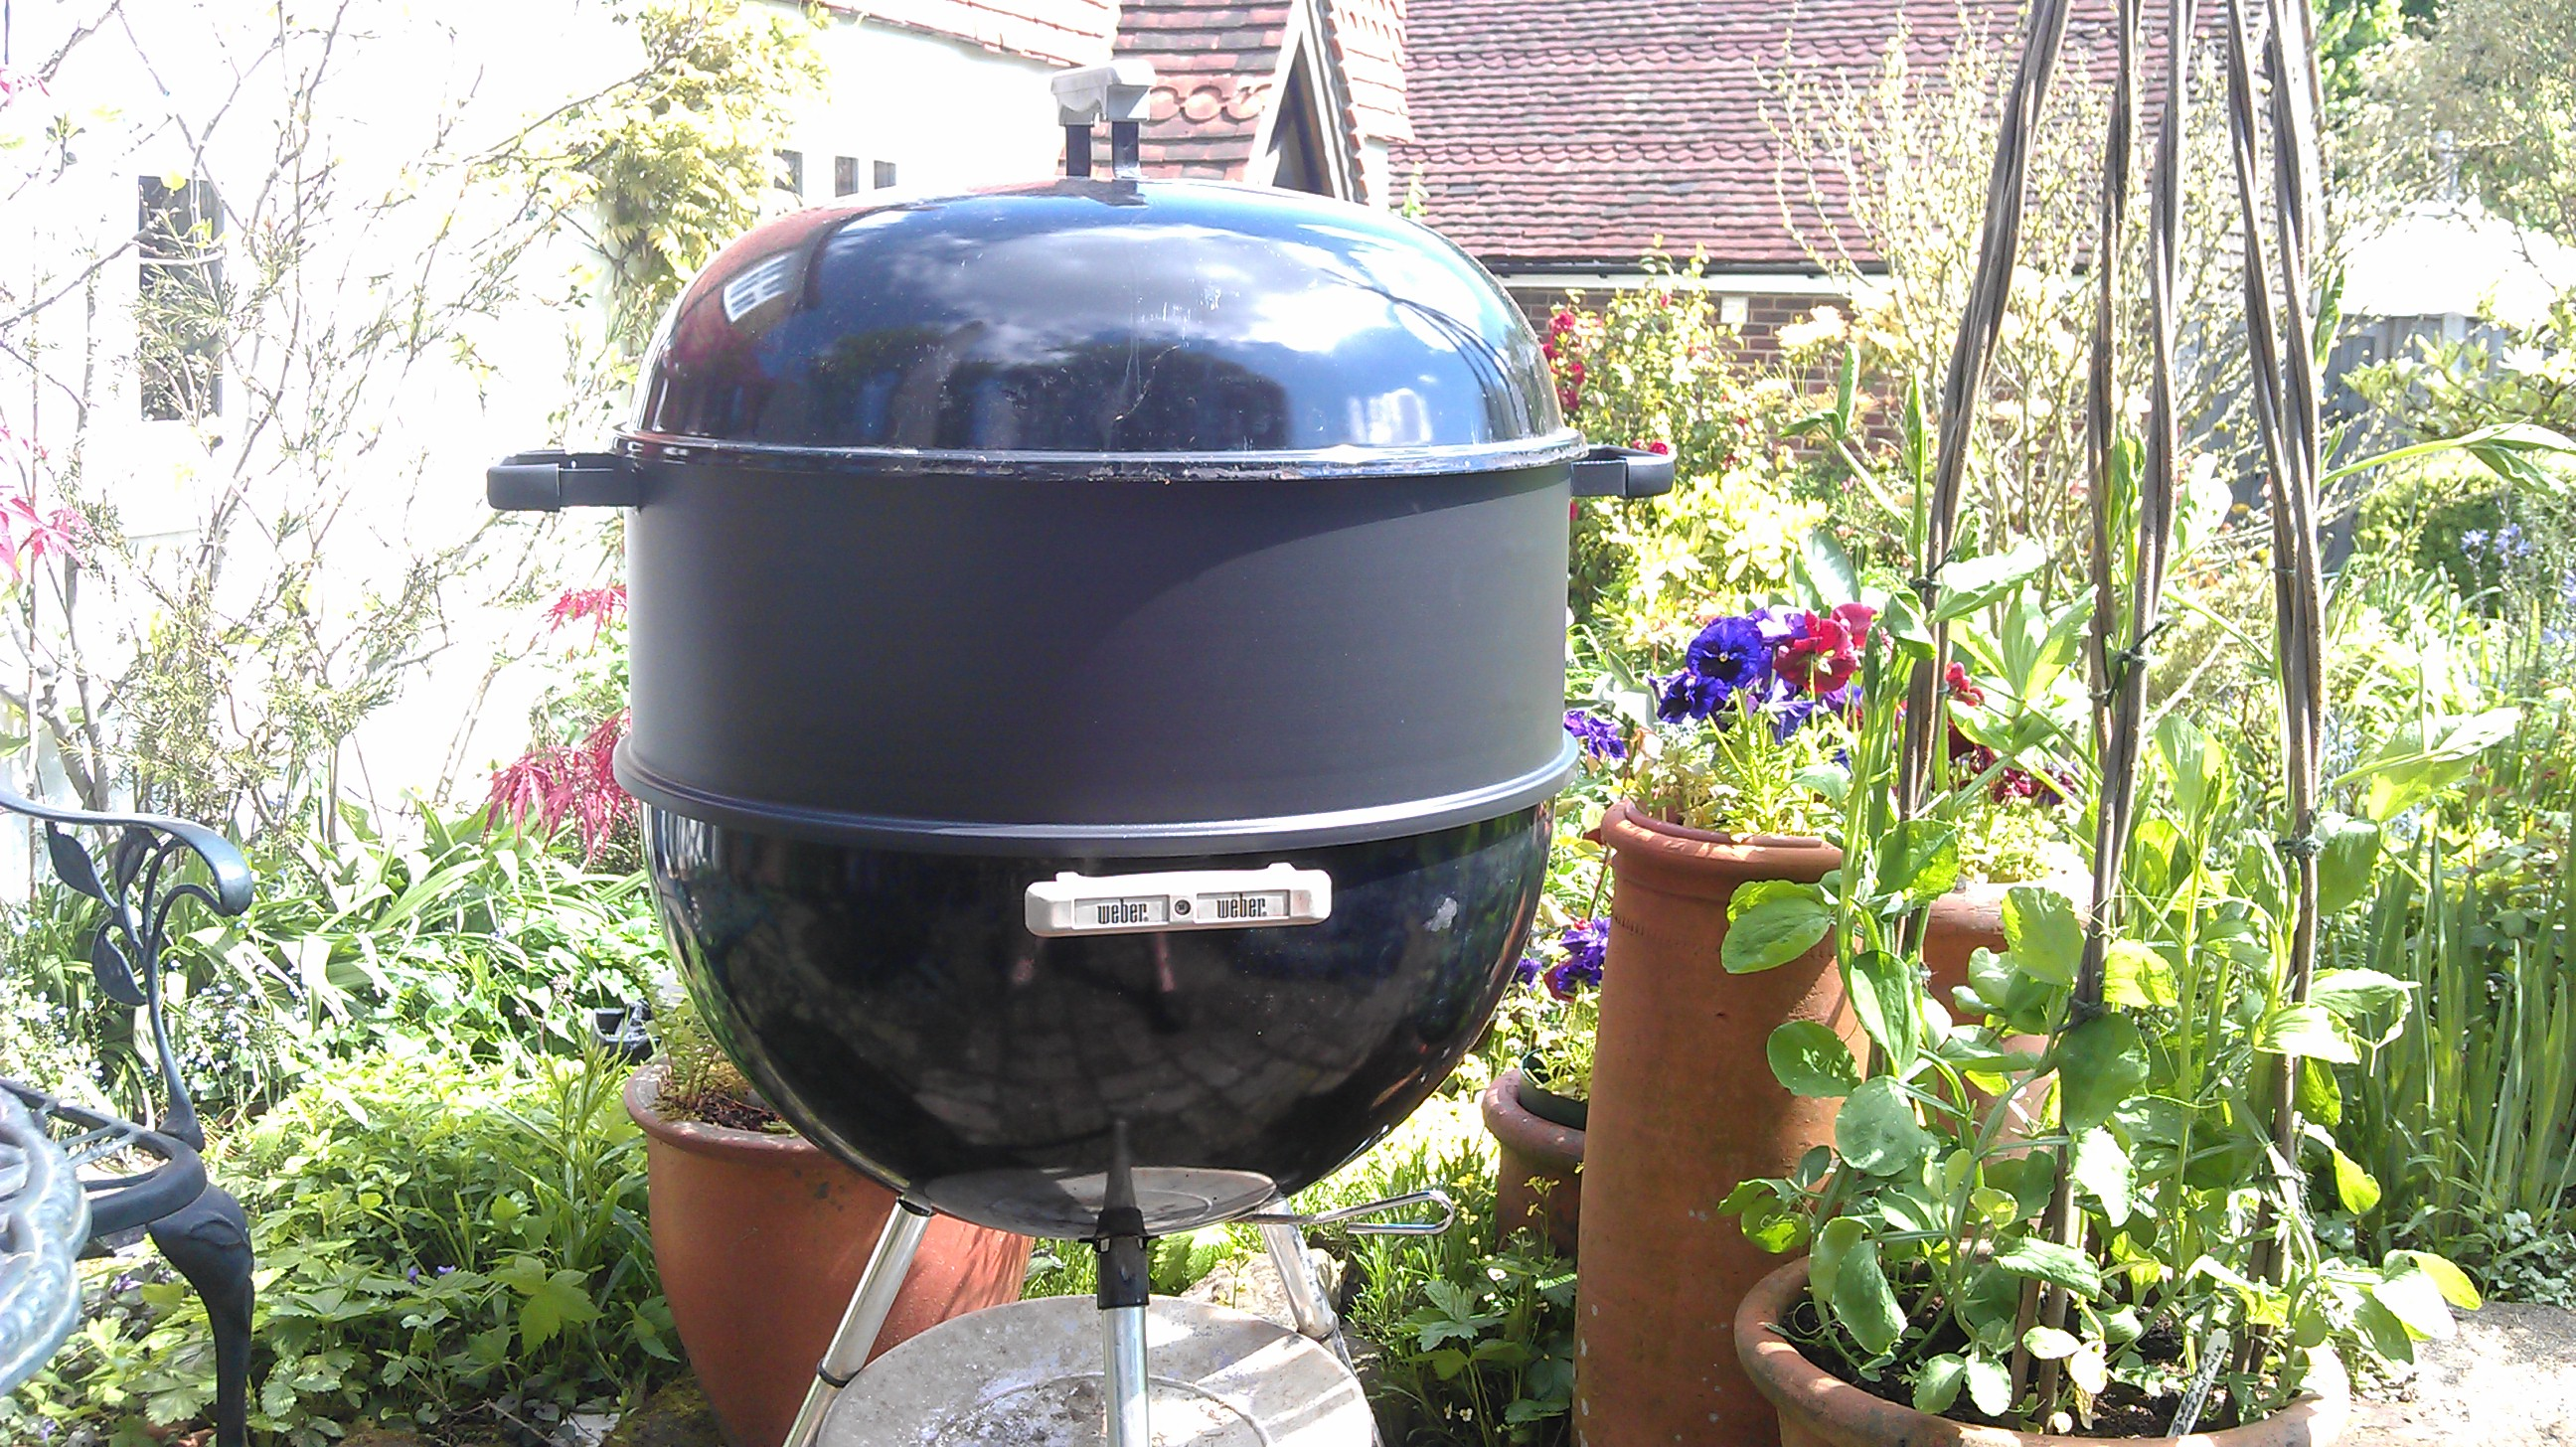 Awesome Backyard Grill 22.5 Inch Kettle Charcoal Grill